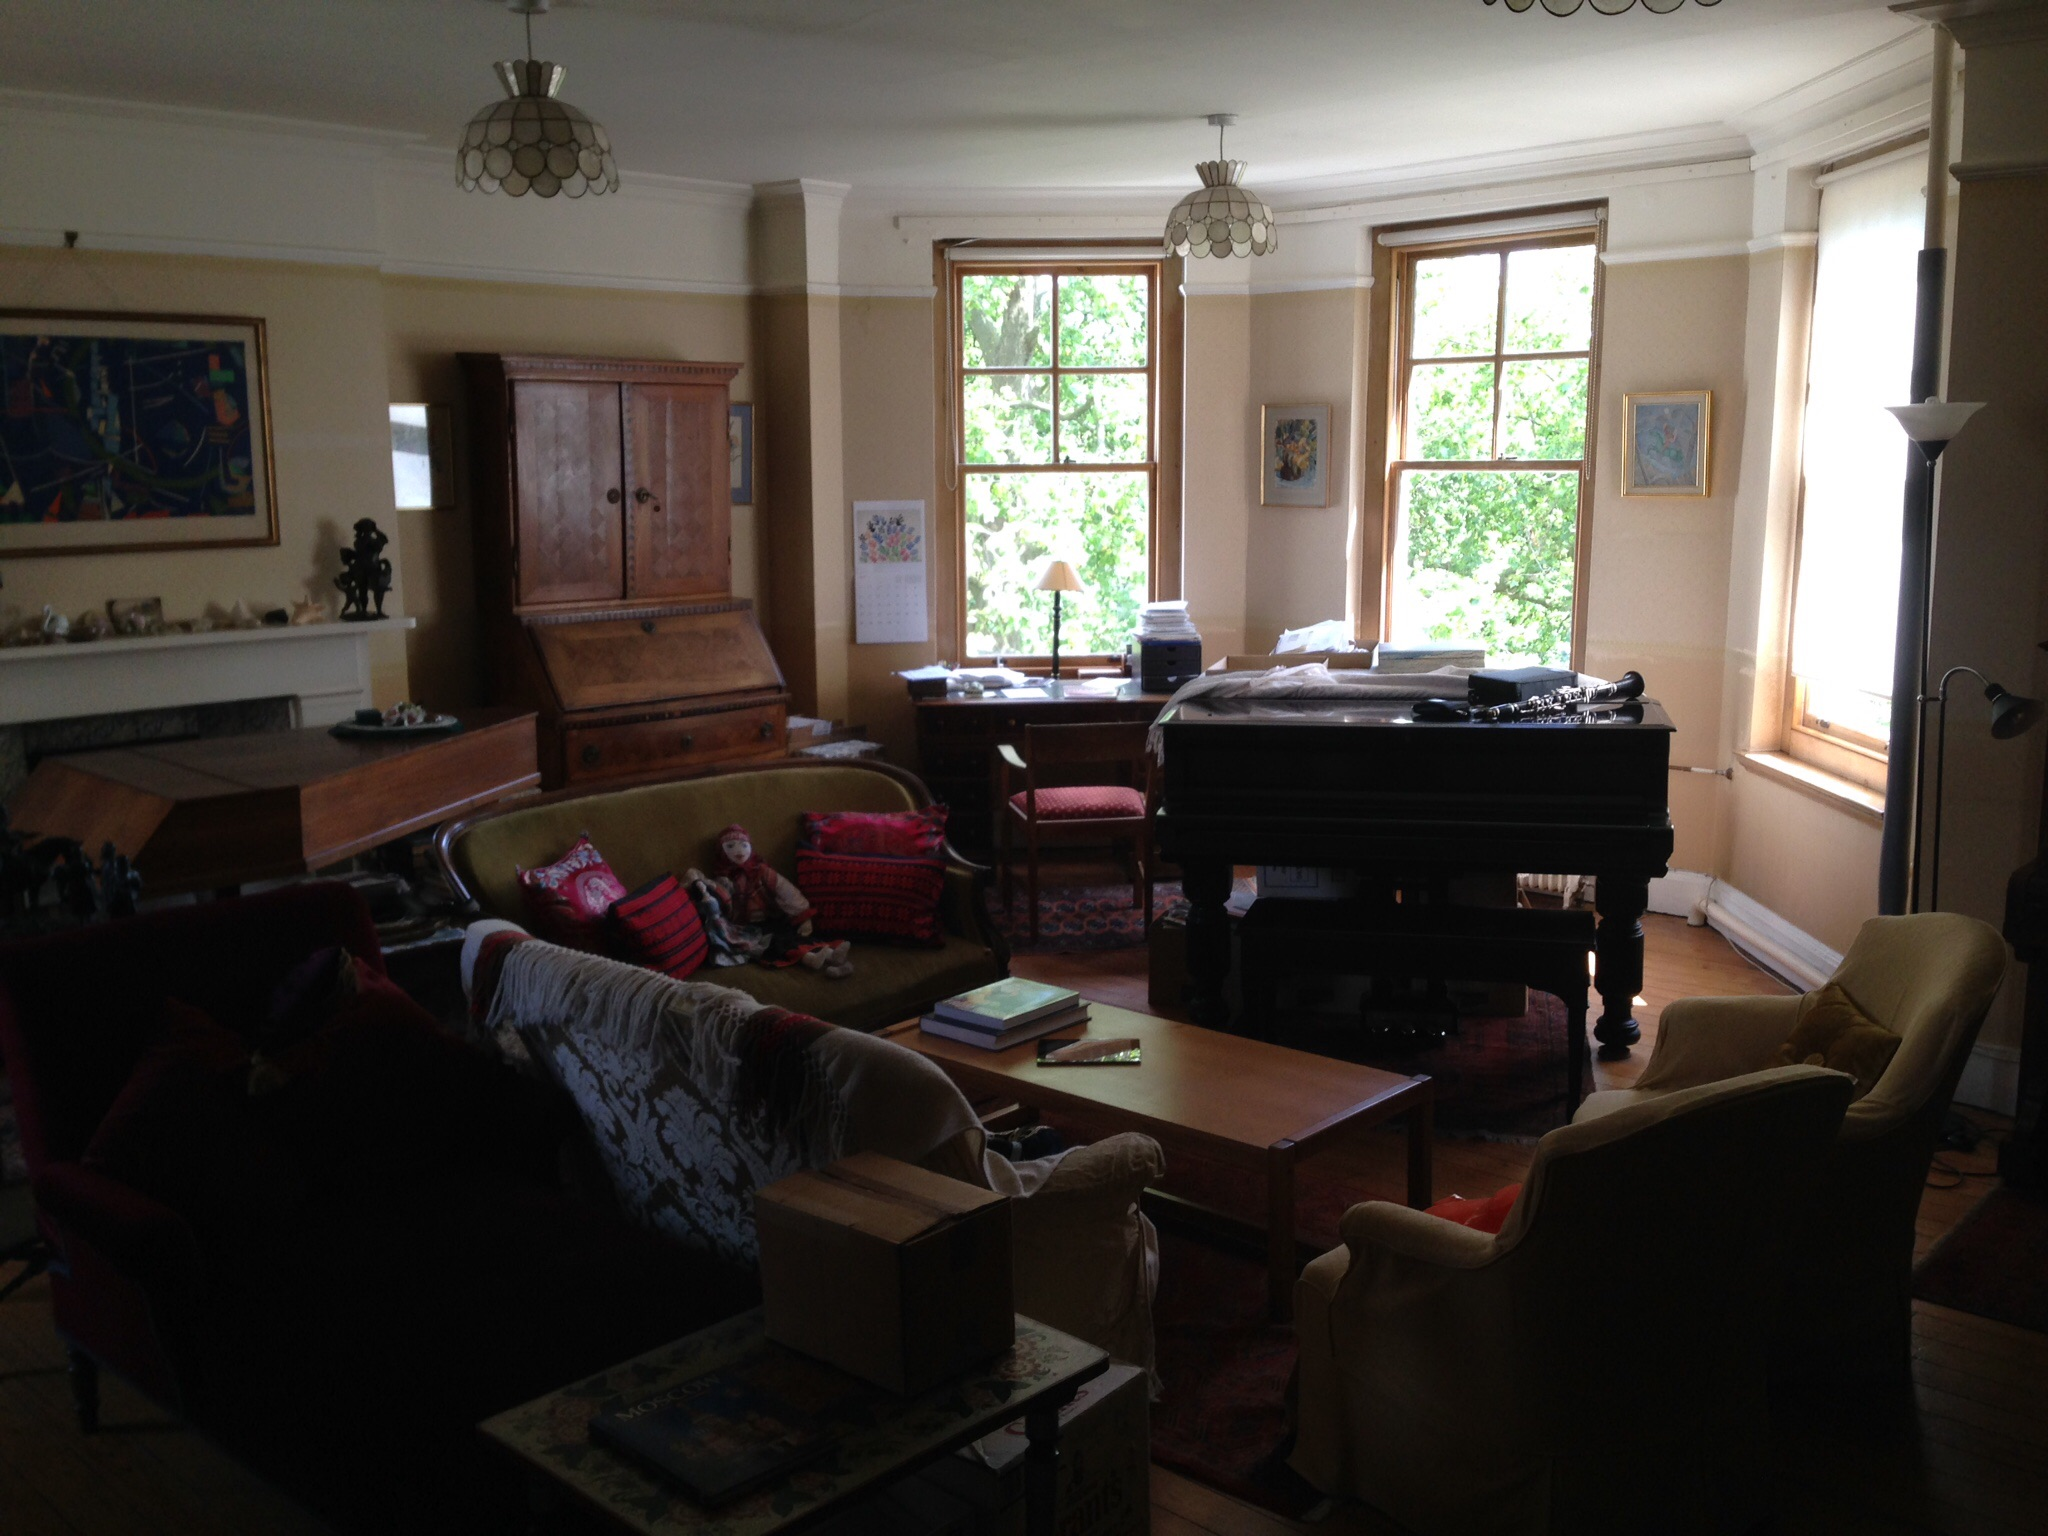 The drawing room in my flat where I got plenty of inspiration to practice and rehearse